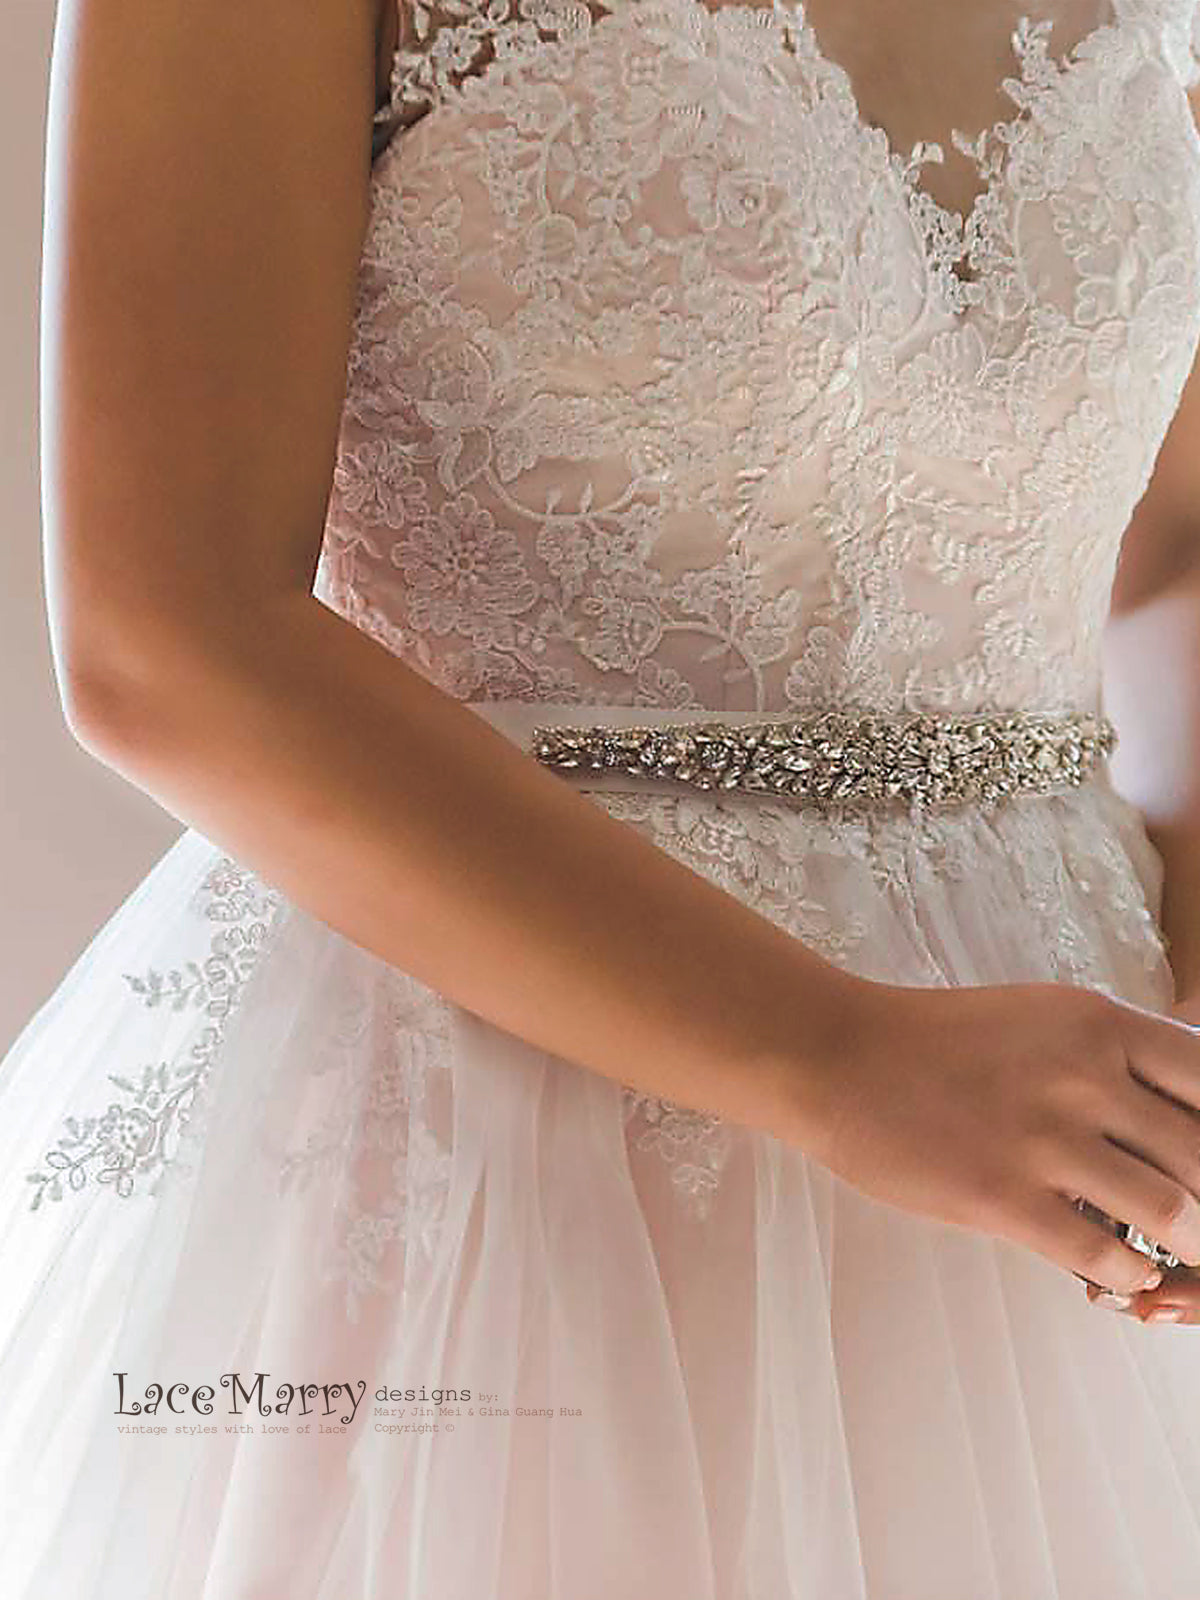 Blush Satin and Soft Lace Applique Boho Wedding Dress